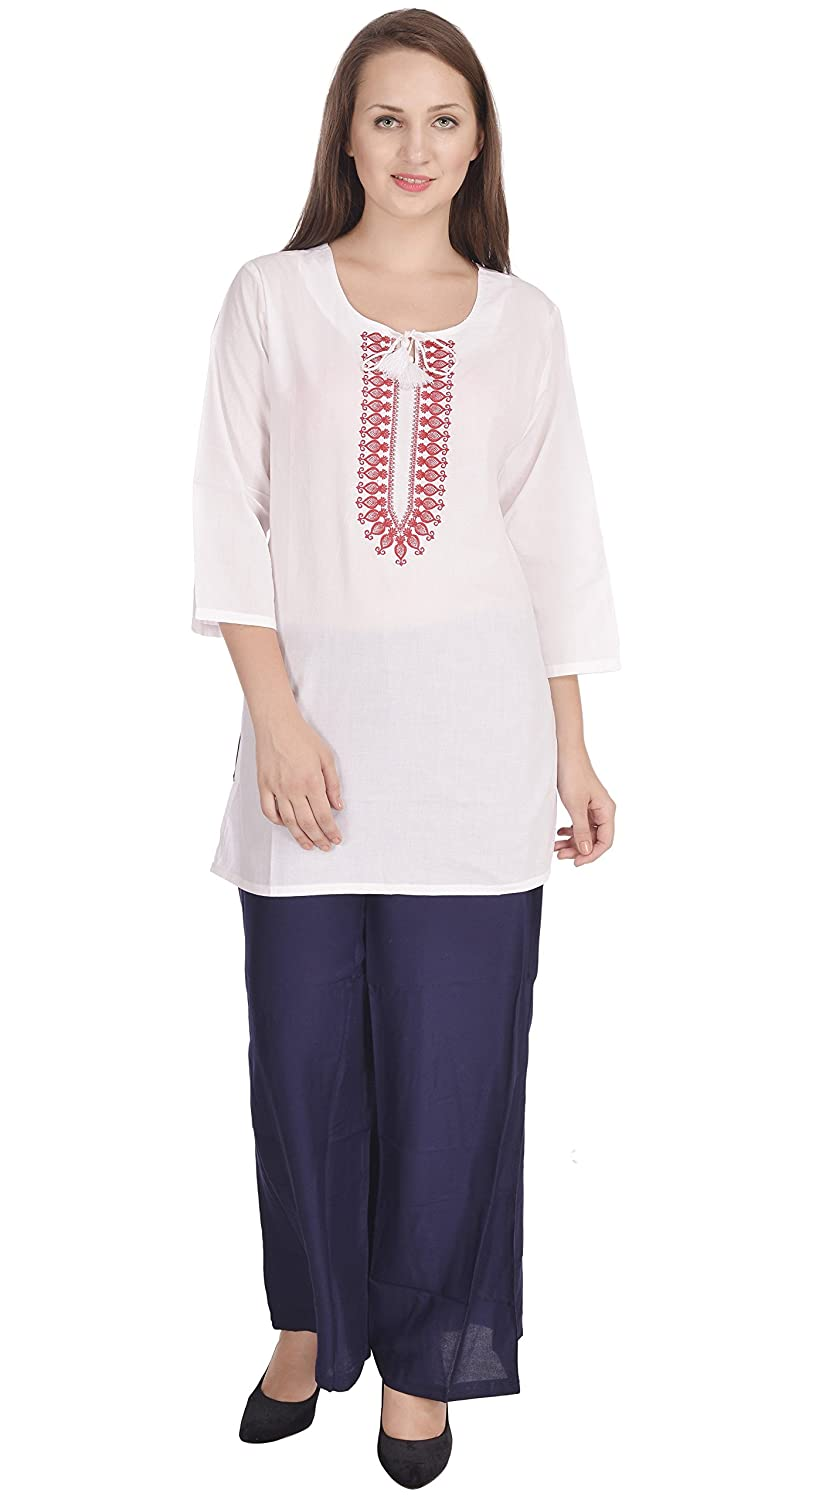 Womens Tunic Top Kurti Blouse 3/4 Sleeve Embroidered Indian Casual Clothing SKAVIJ M_WT-7